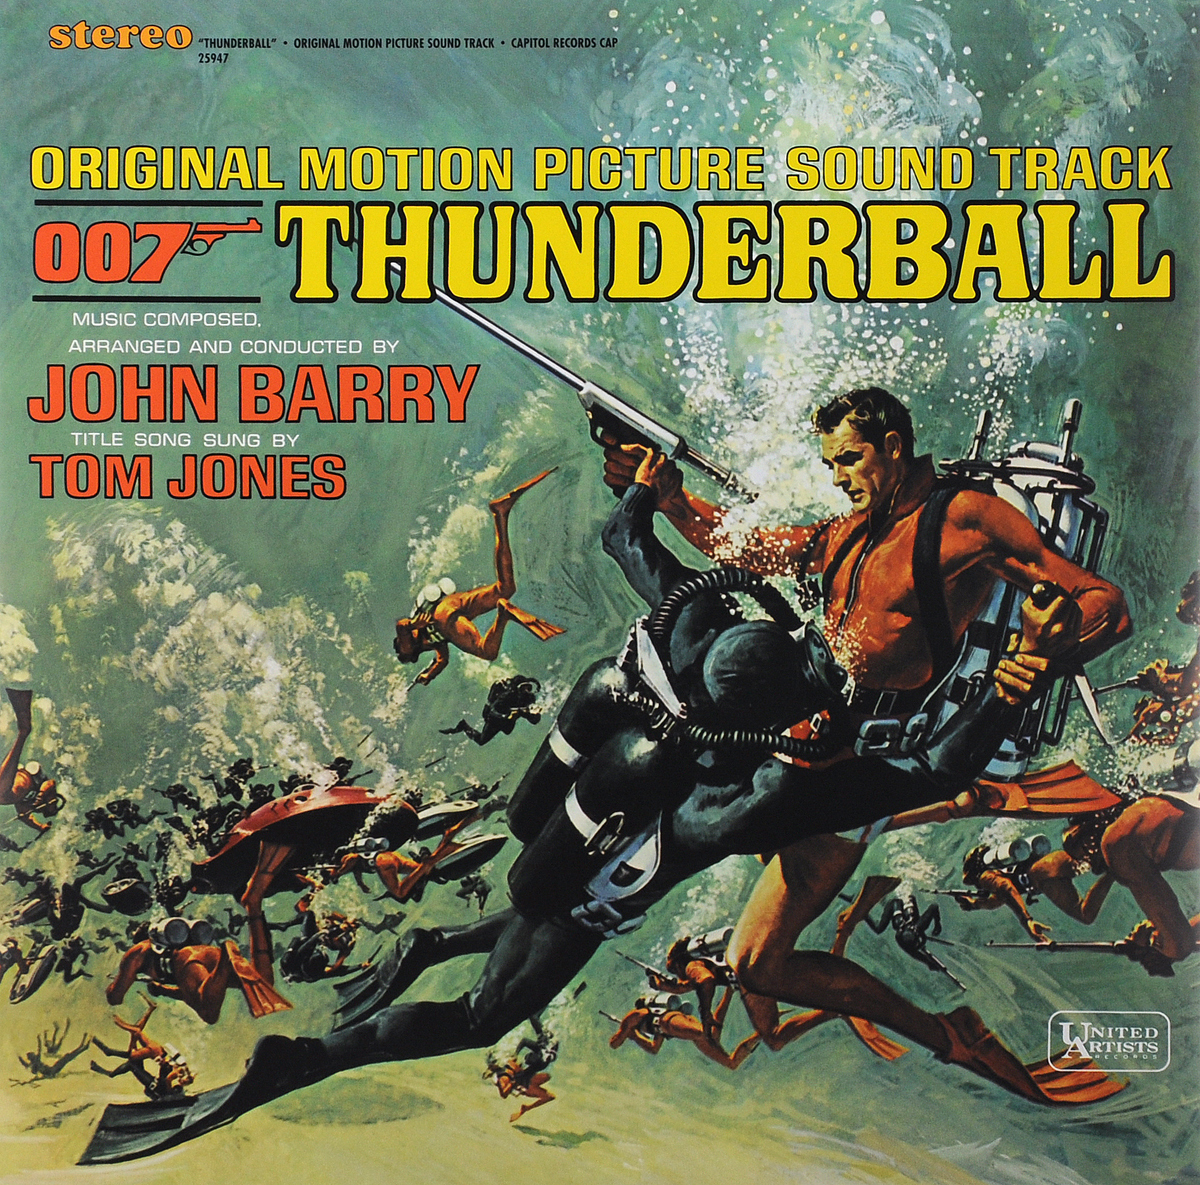 Thunderball. Original Motion Picture Sound Track (LP) black girl original sound track recording